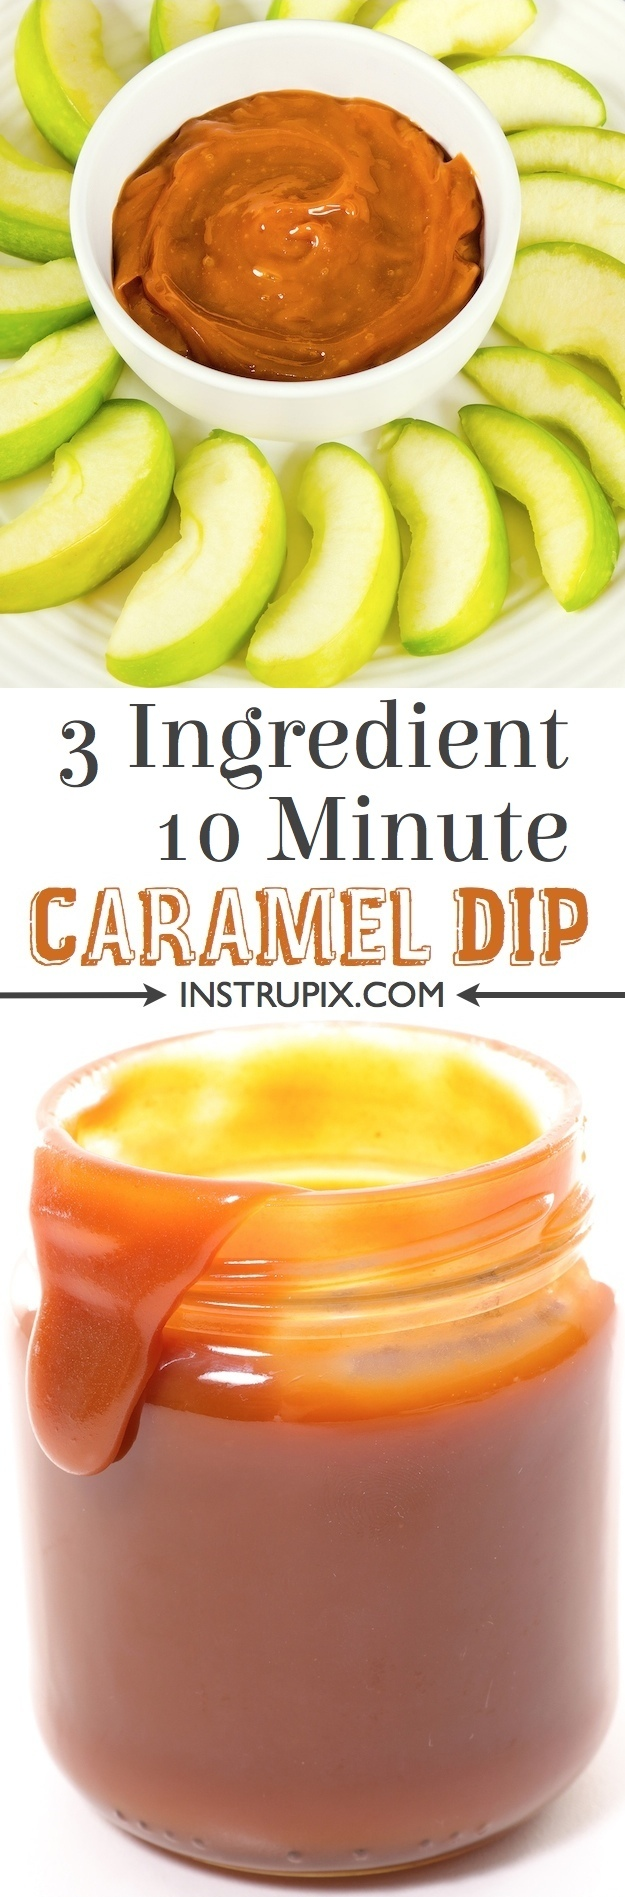 The BEST, easy caramel dip and sauce recipe for apples, pie, ice cream or anything else you would like! Just 3 ingredients!